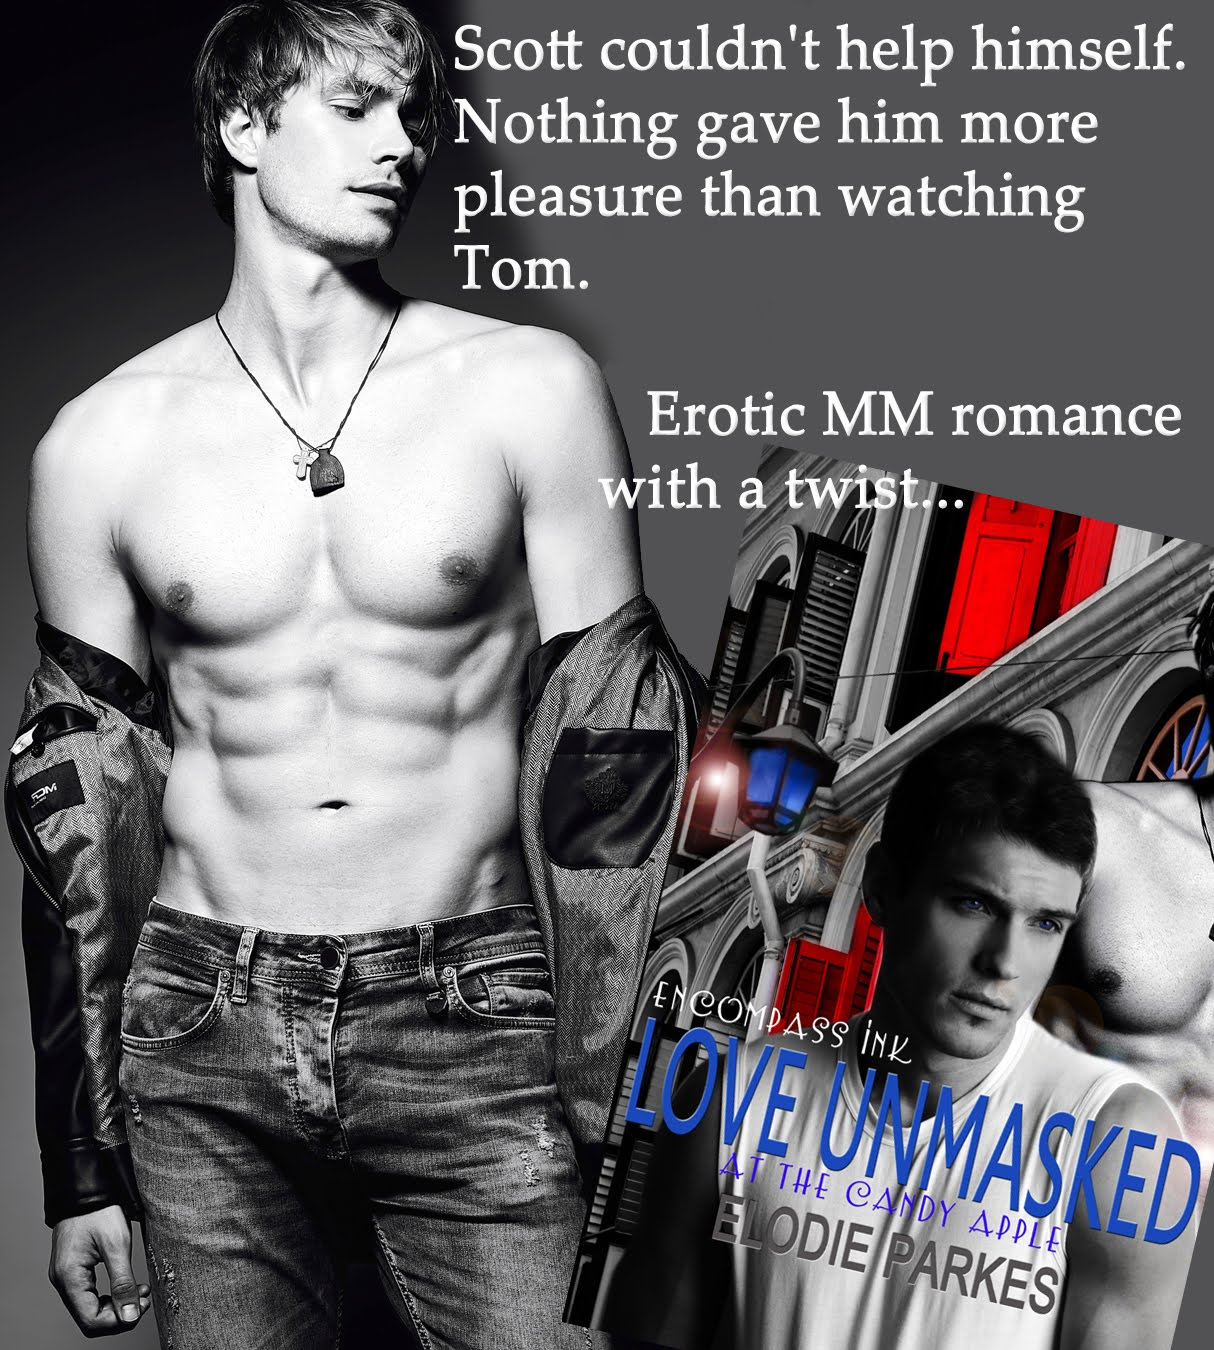 Hot new release #MMromance from Encompass Ink click on the poster for Amazon